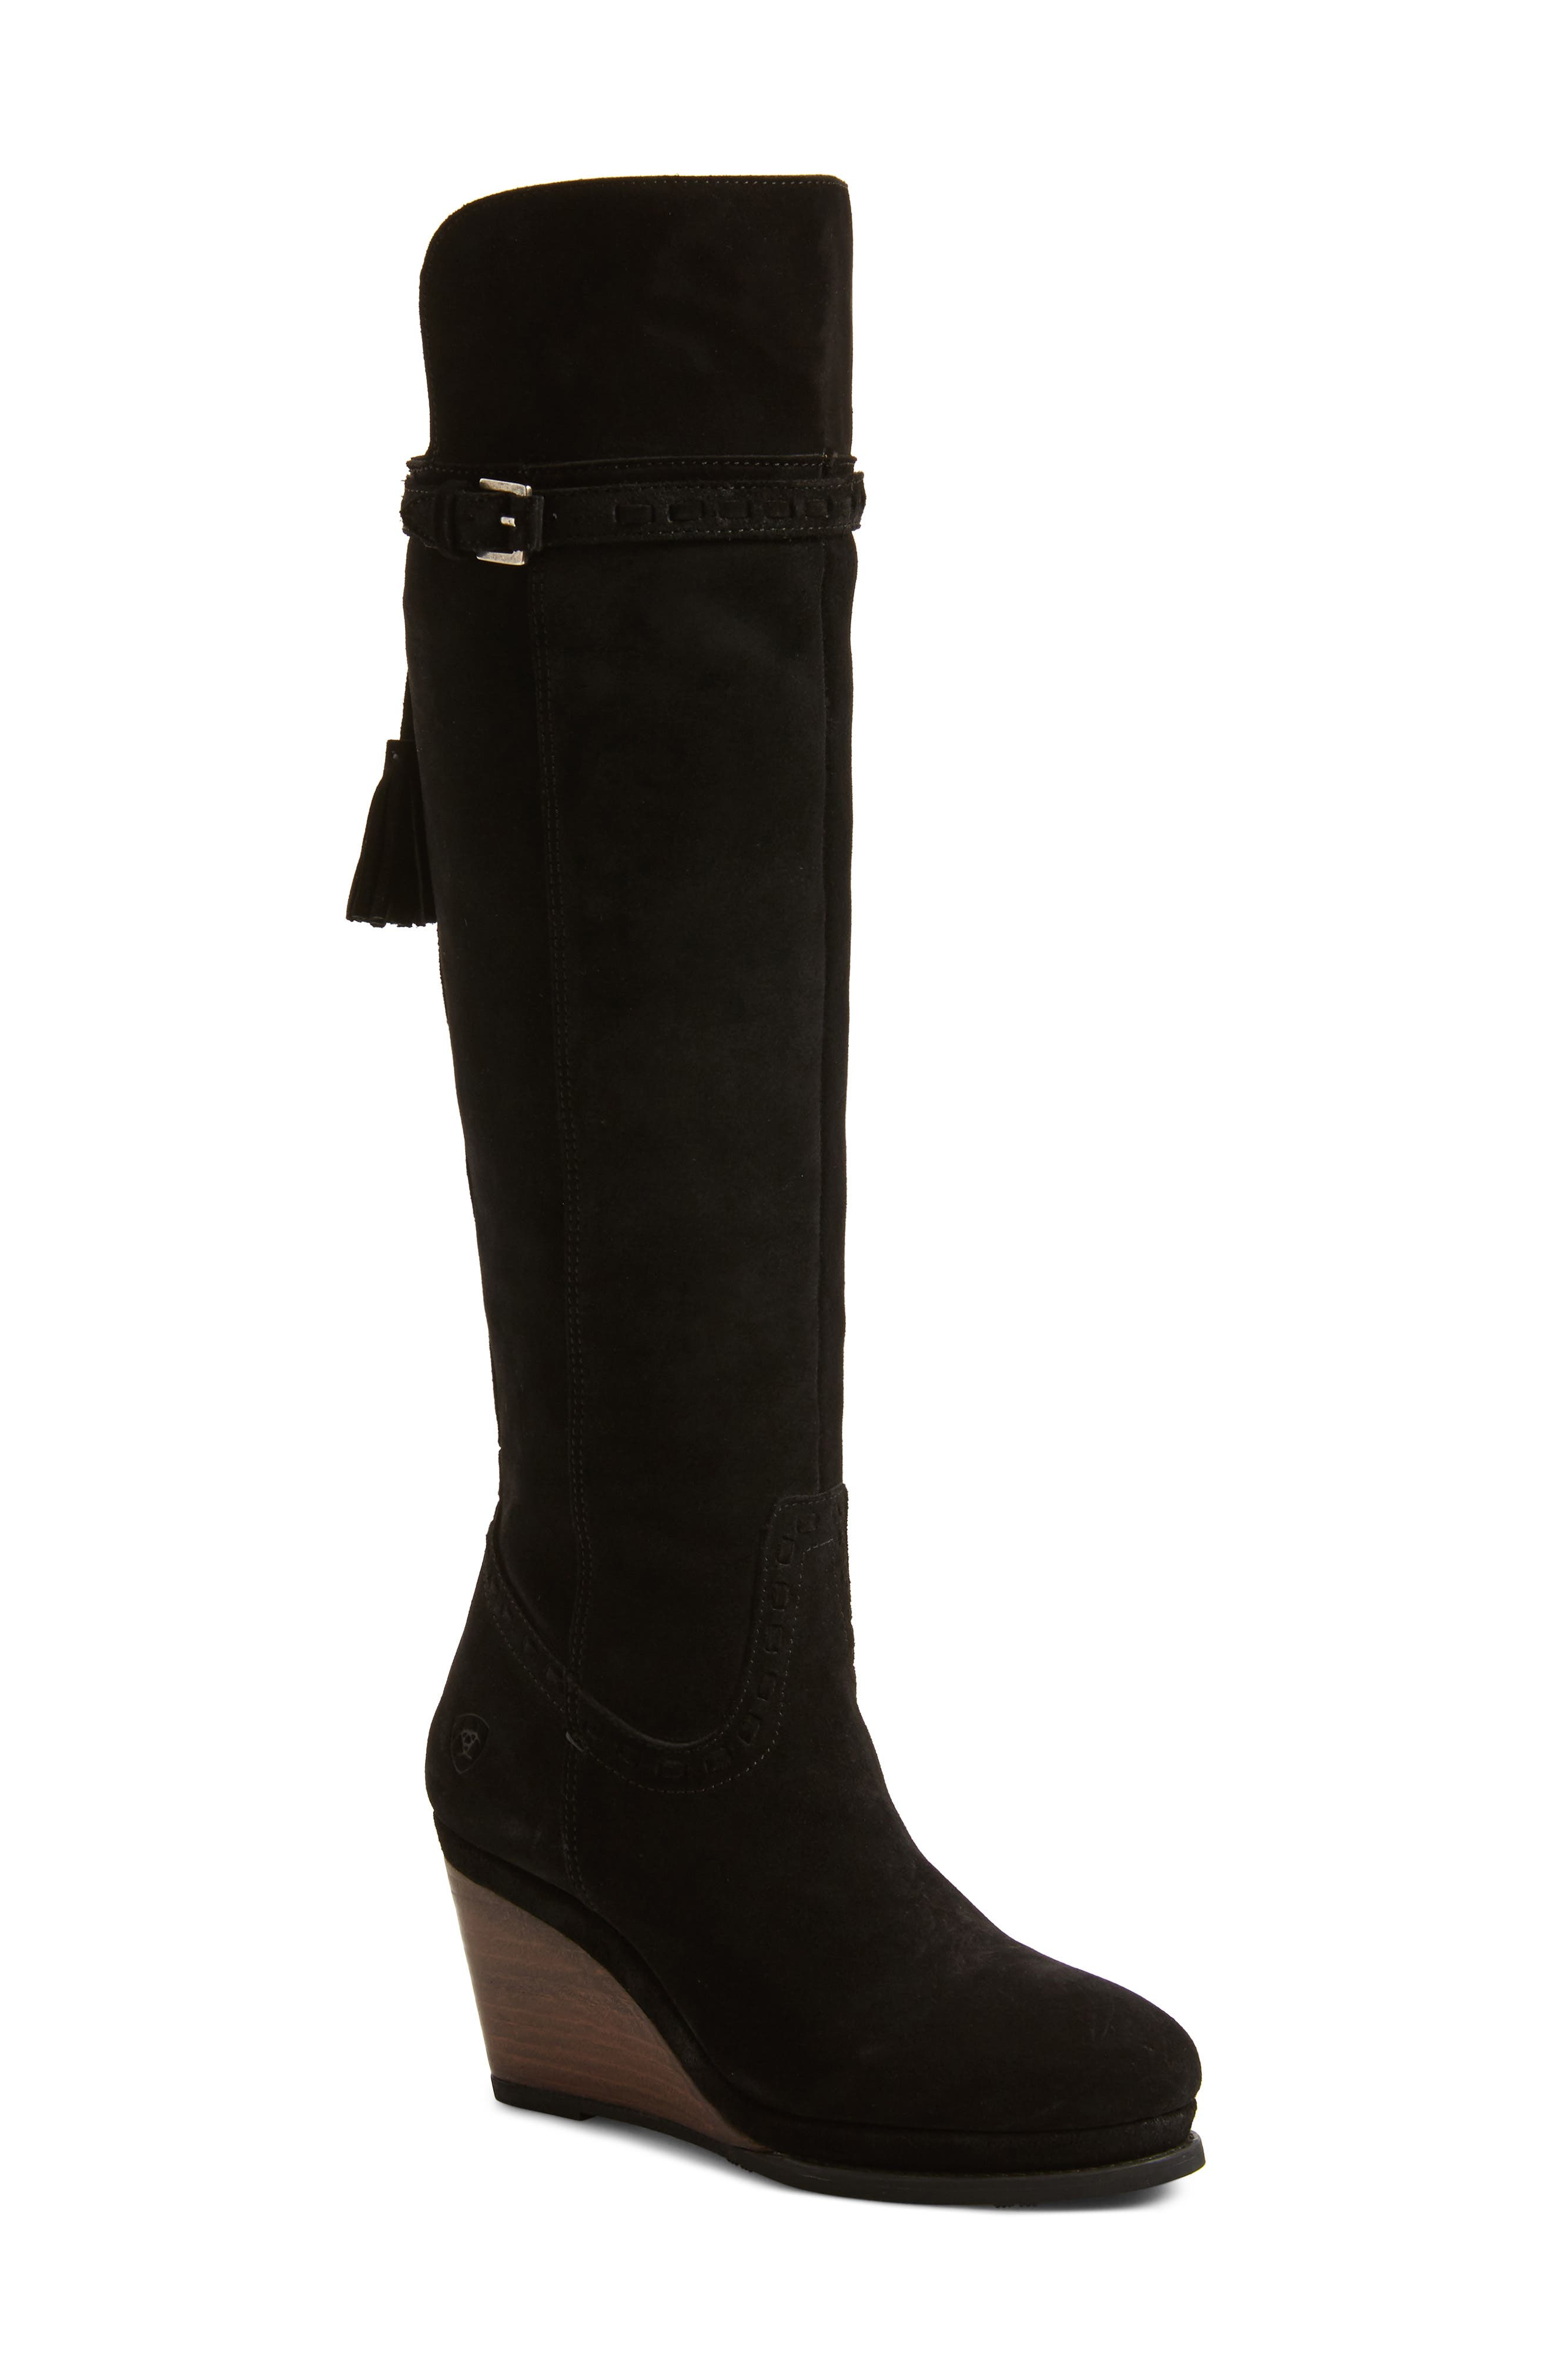 Knoxville Boot,                         Main,                         color, BLACK LEATHER